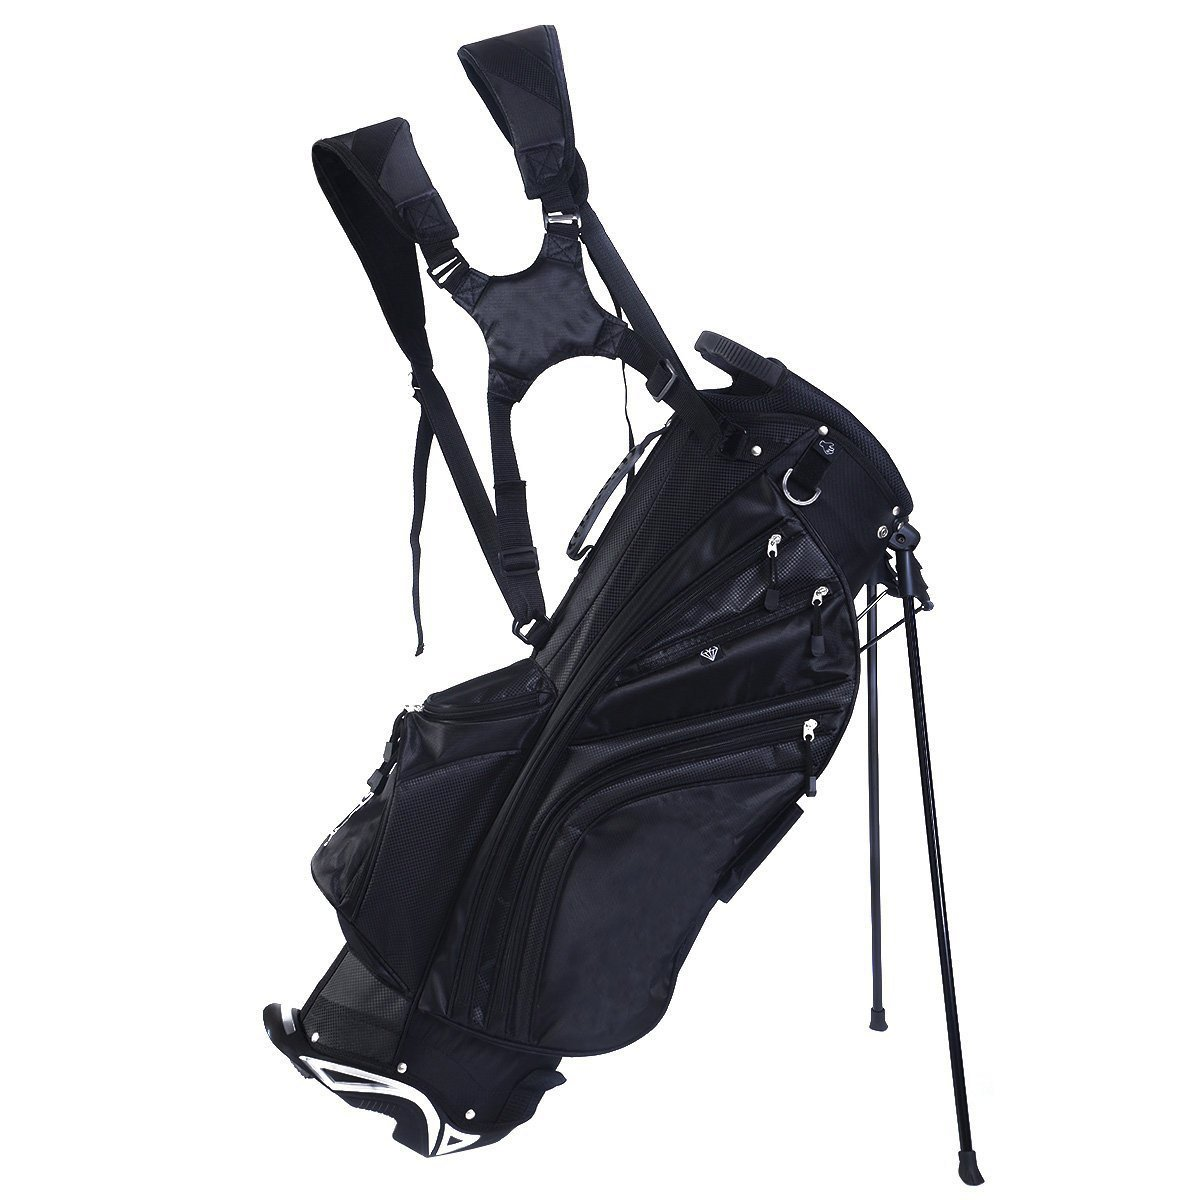 TANGKULA Hyper Lite Golf Stand Bag w/Shoulder Strap Rain Cover Blk & White 6 Way Divider by TANGKULA